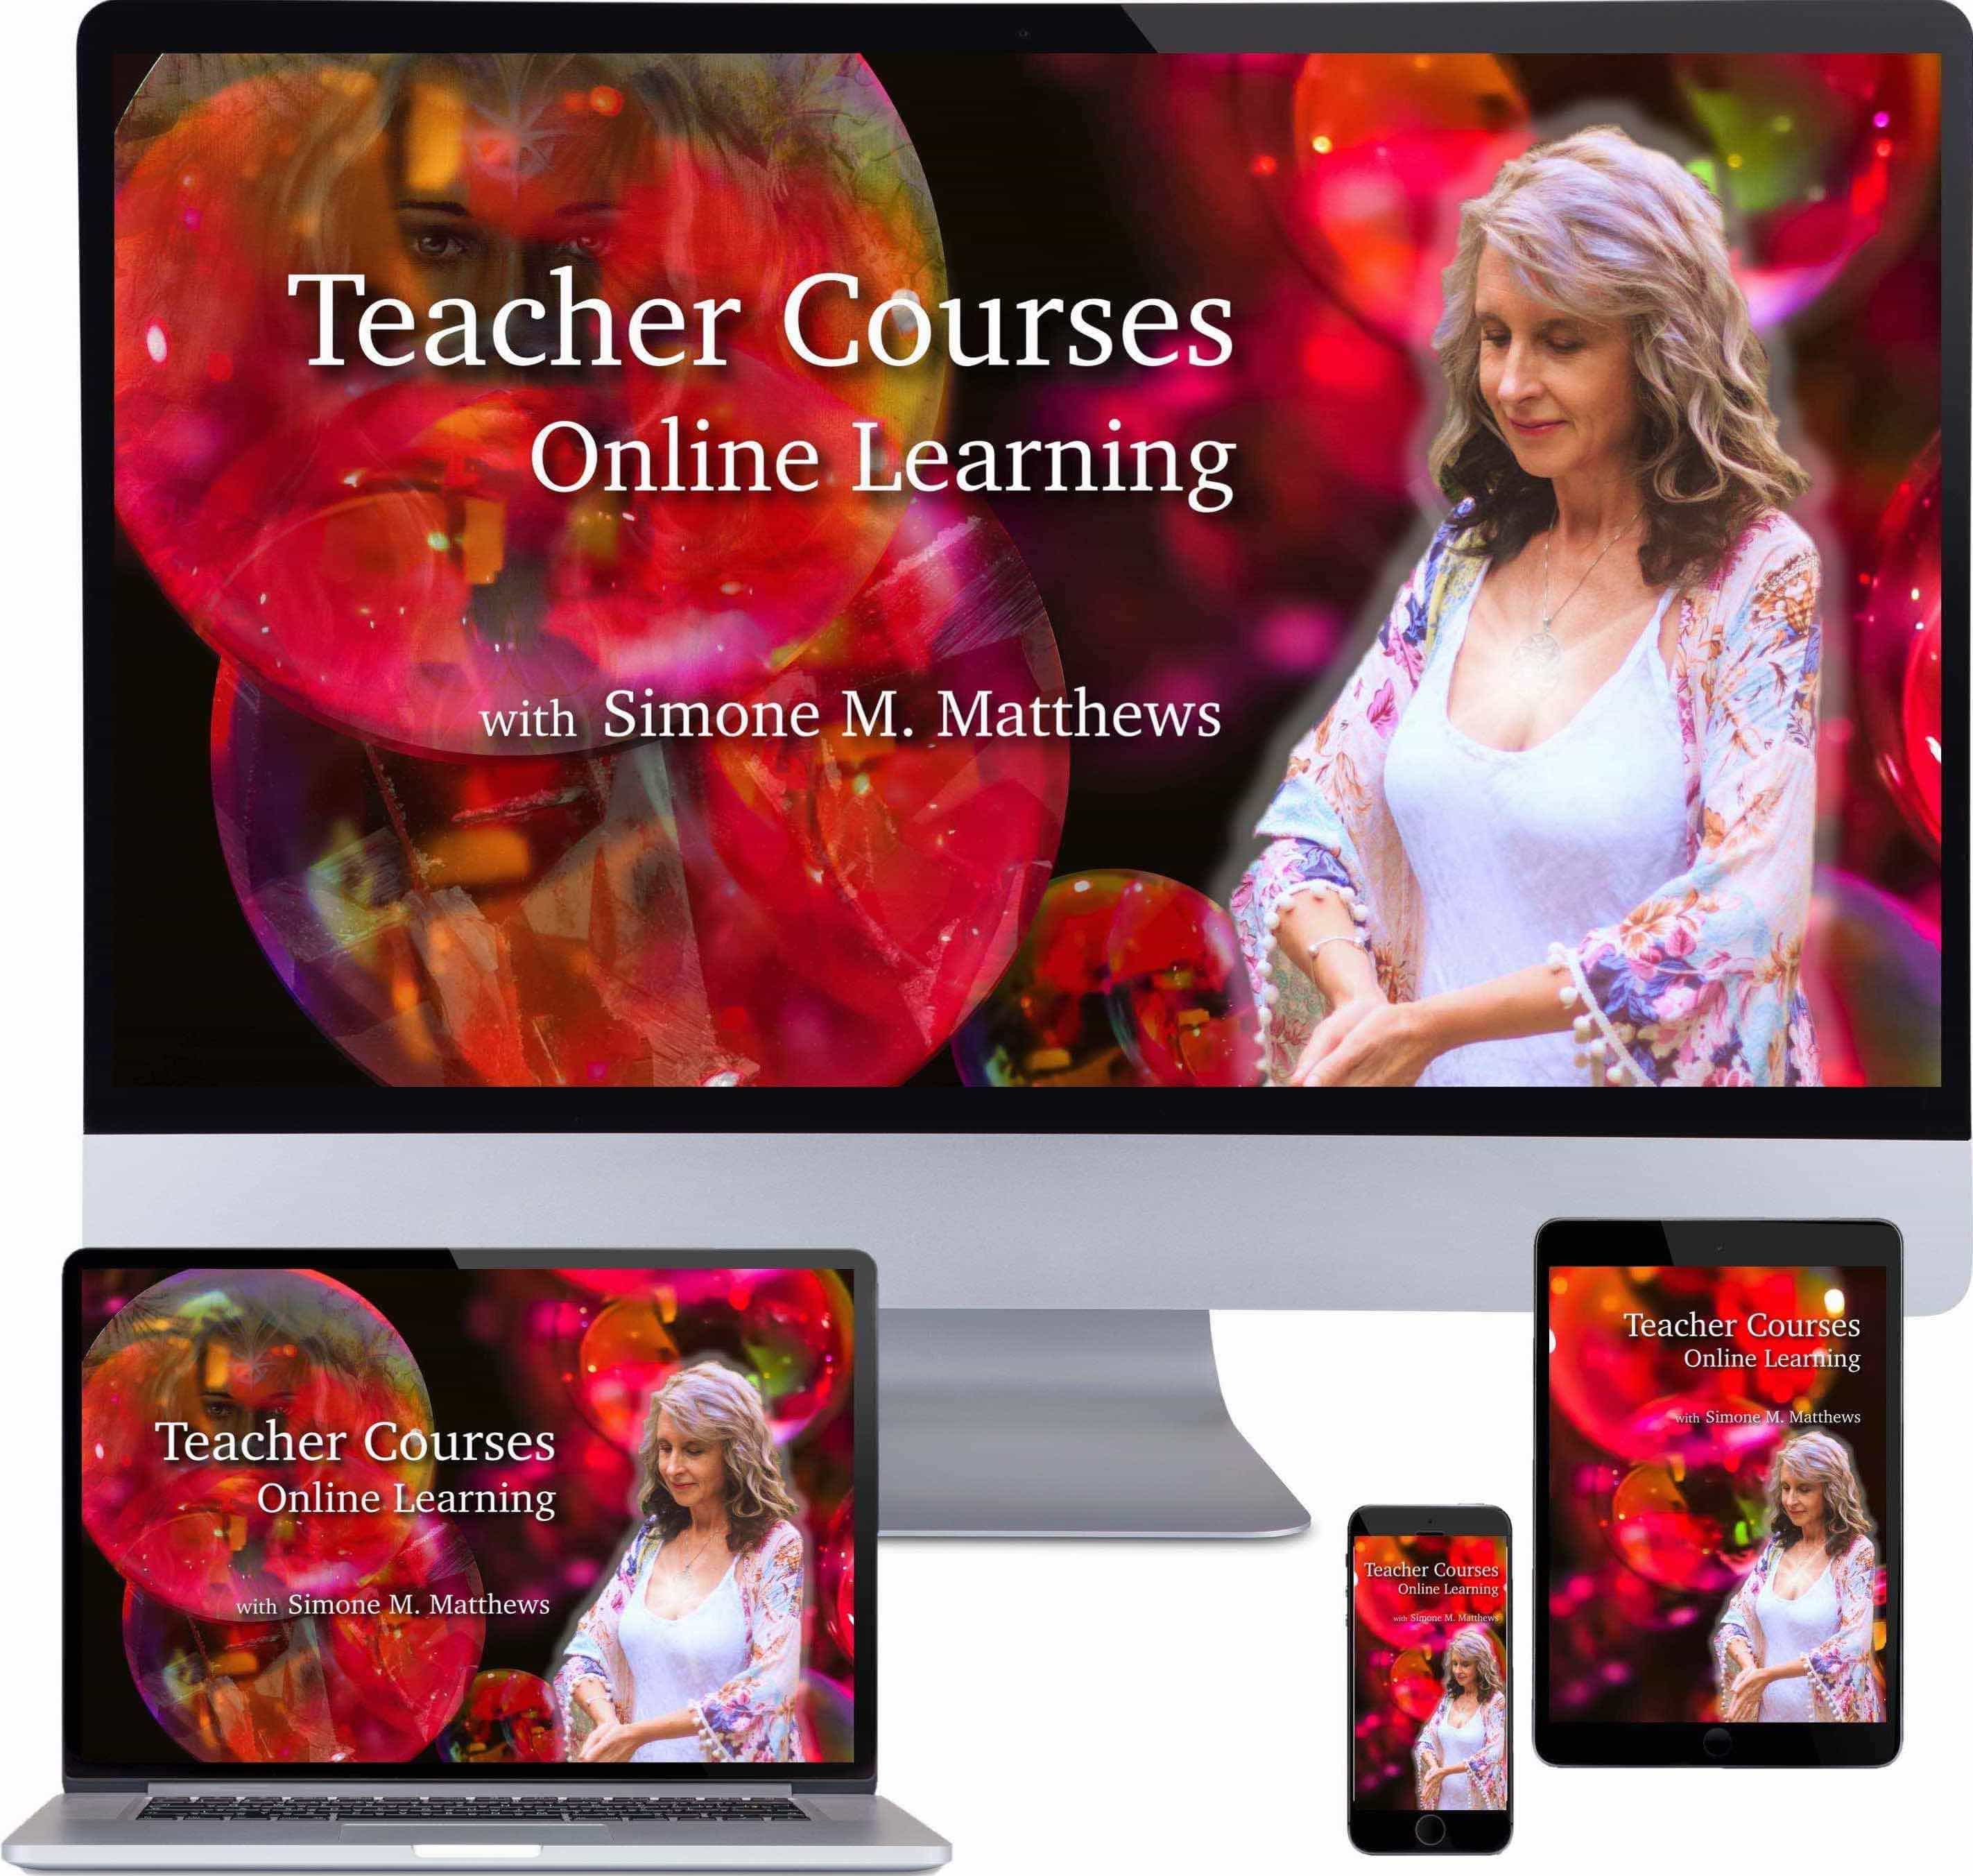 Teacher Courses - Online Learning